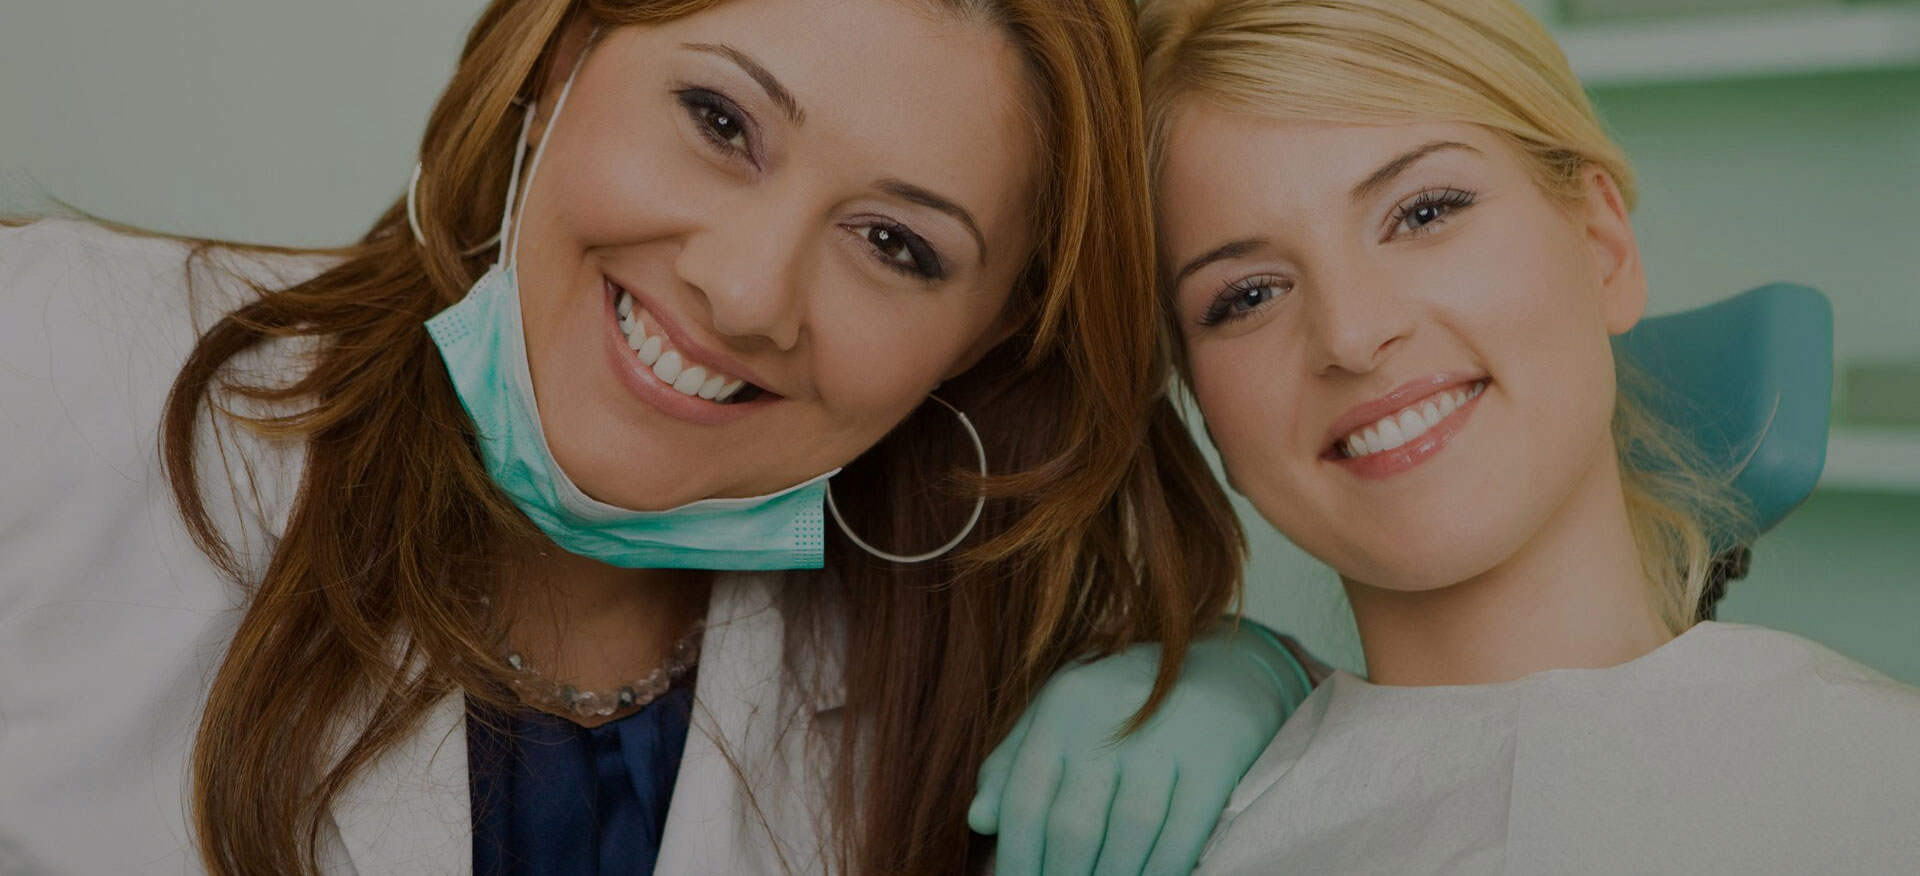 dentist jobs, dental assistant jobs, dental hygienist jobs, and dental office administrator jobs